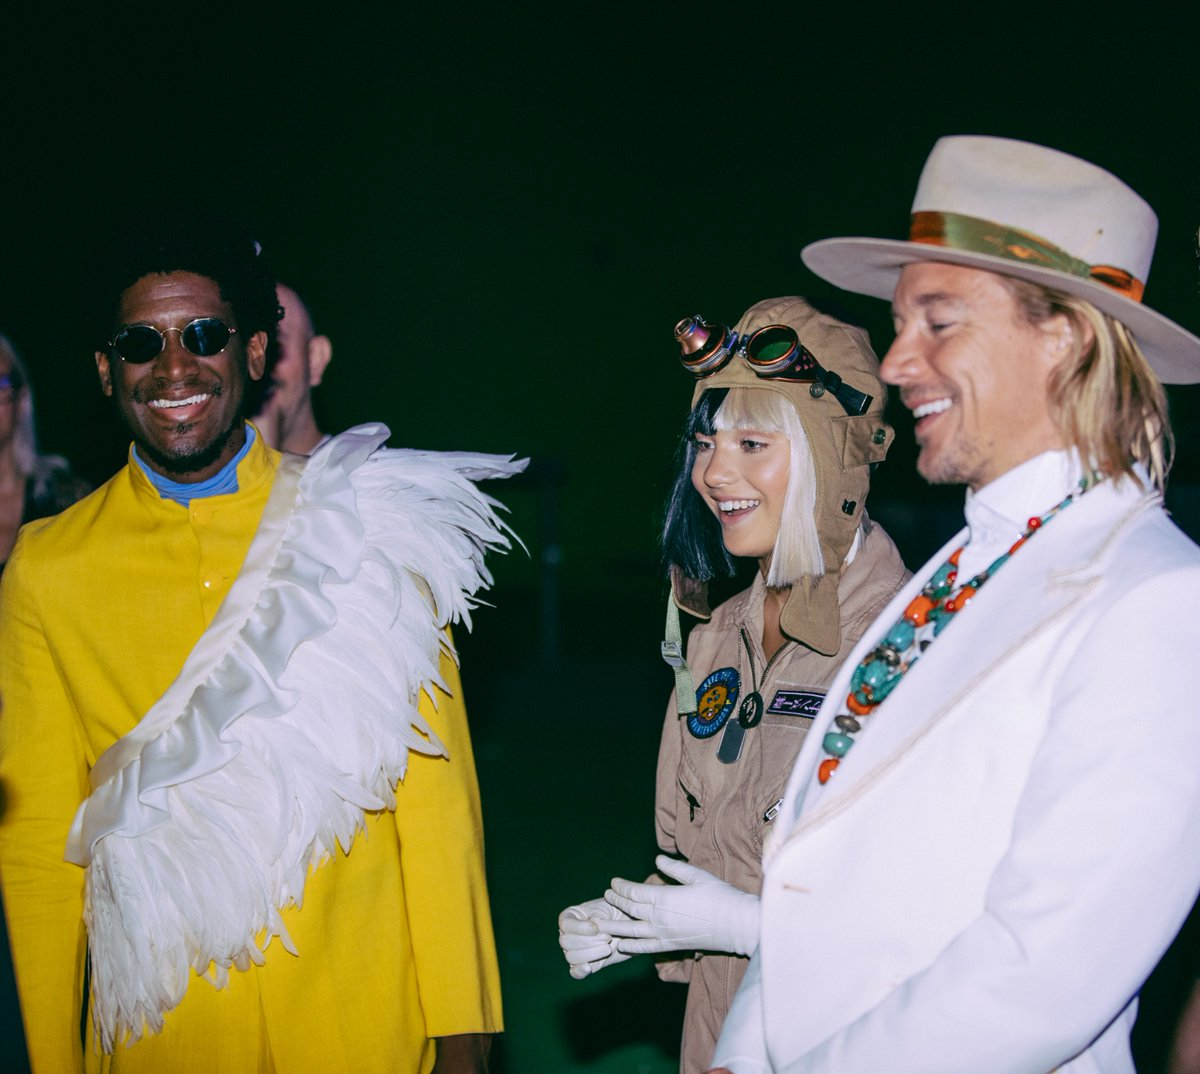 Thunderclouds - Coming Soon - Team Sia #LSD @labrinth @diplo https://t.co/bpPGdWfClS